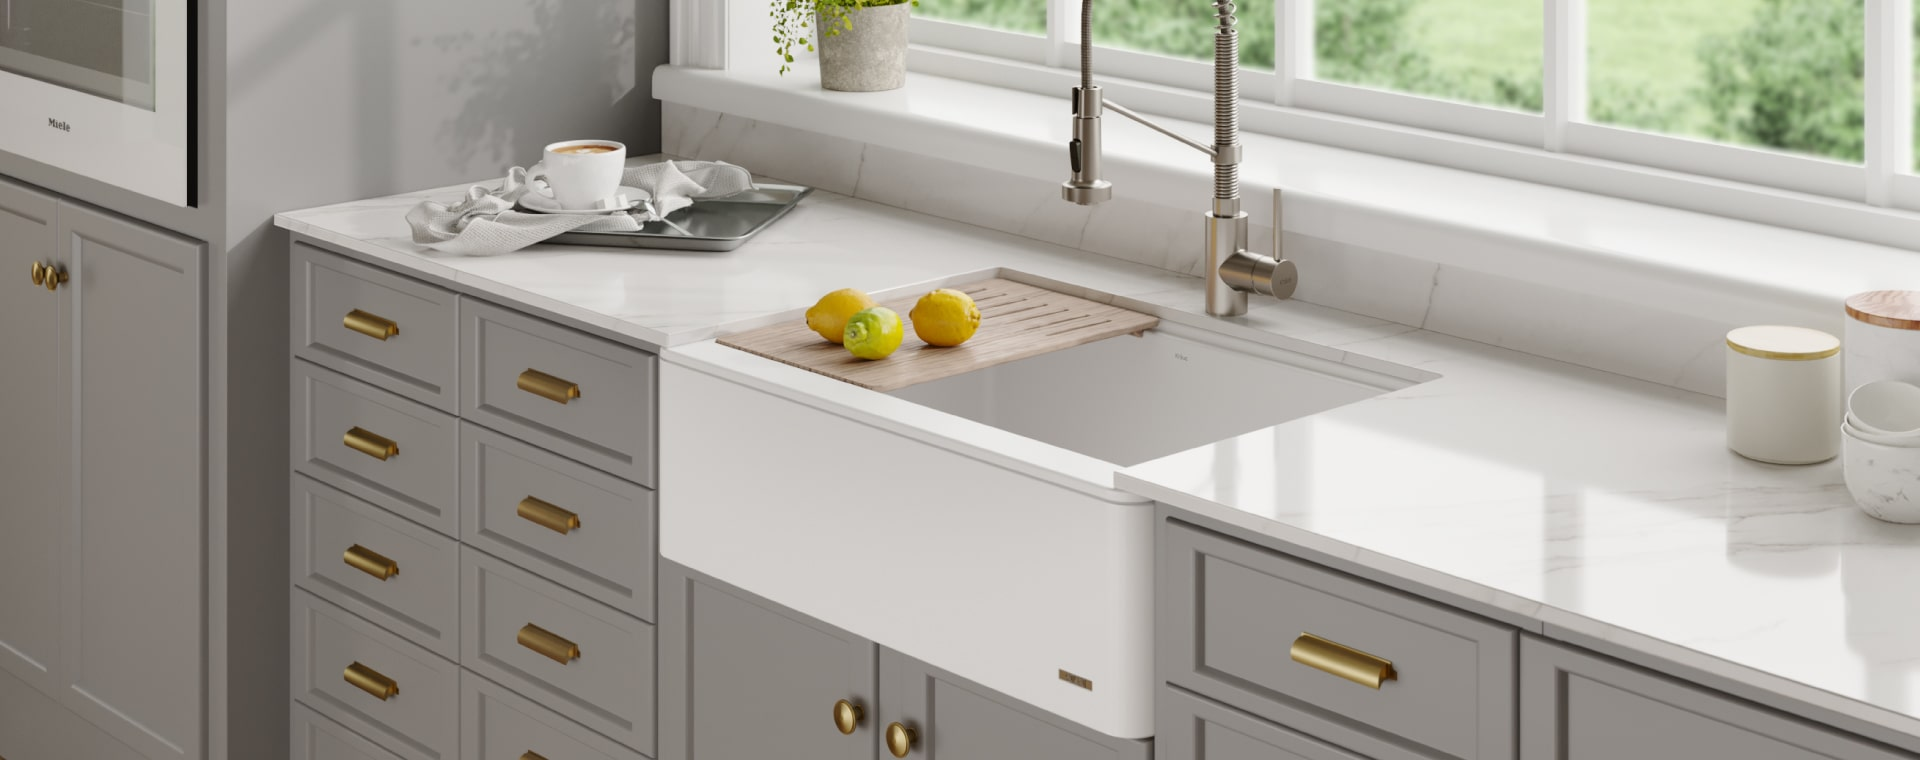 Sinks Faucets For Sale Kitchen Bathroom Fixtures